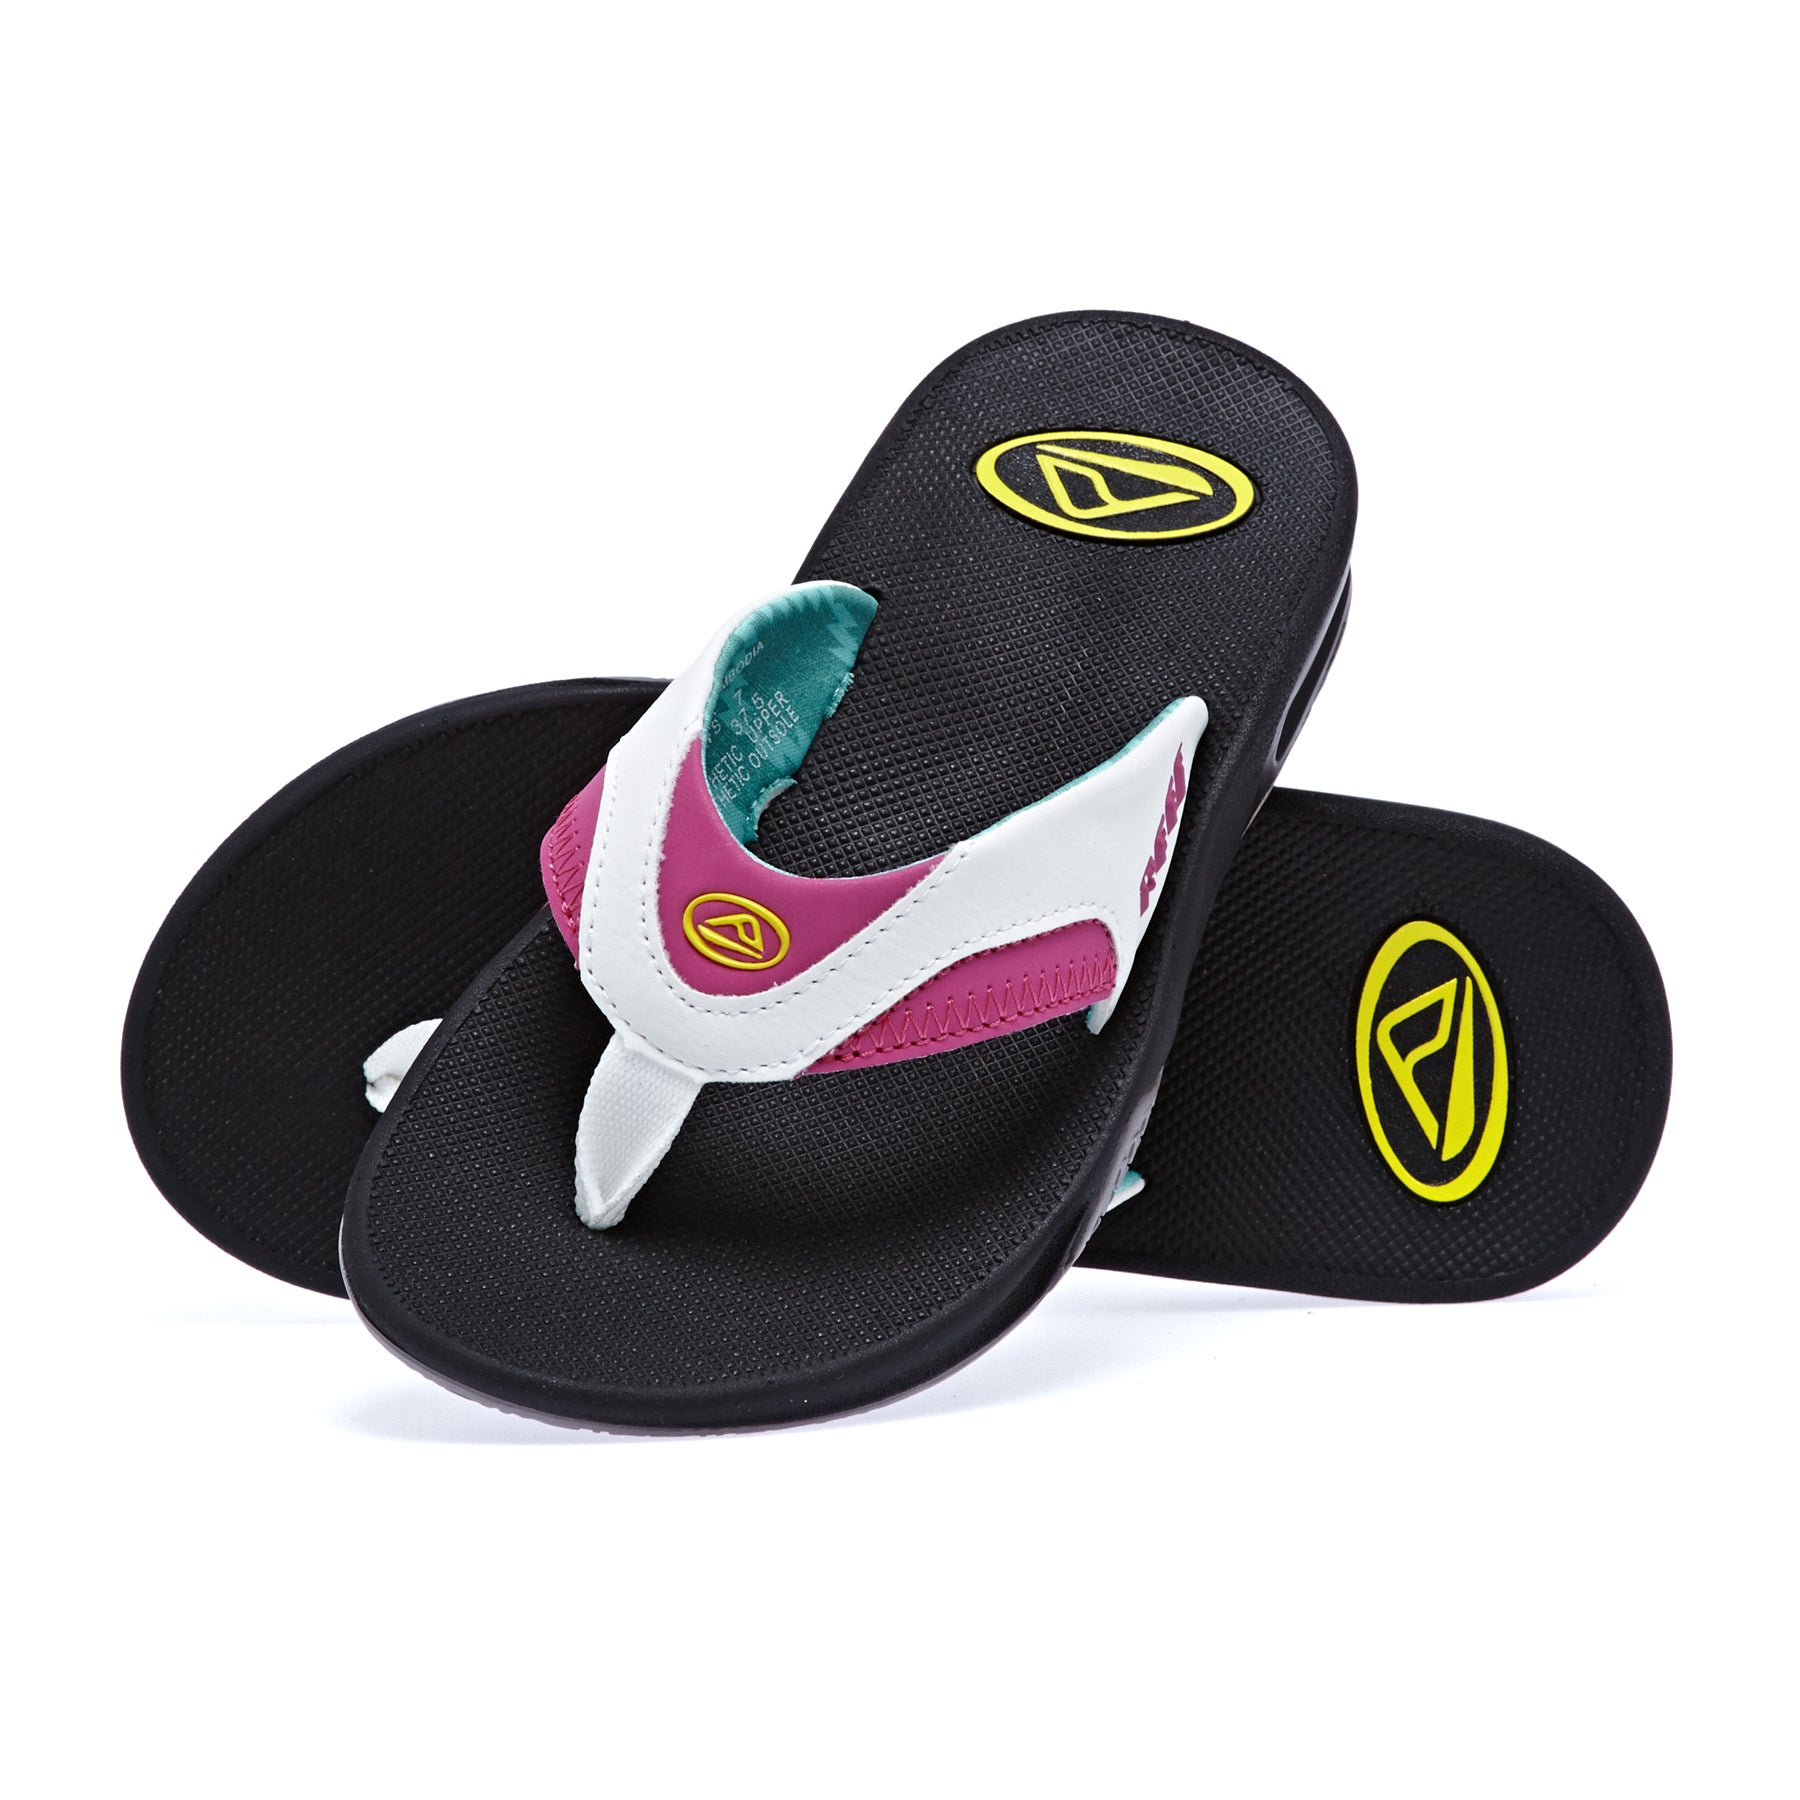 2932501e3a74 Reef Fanning Womens Sandals available from Surfdome